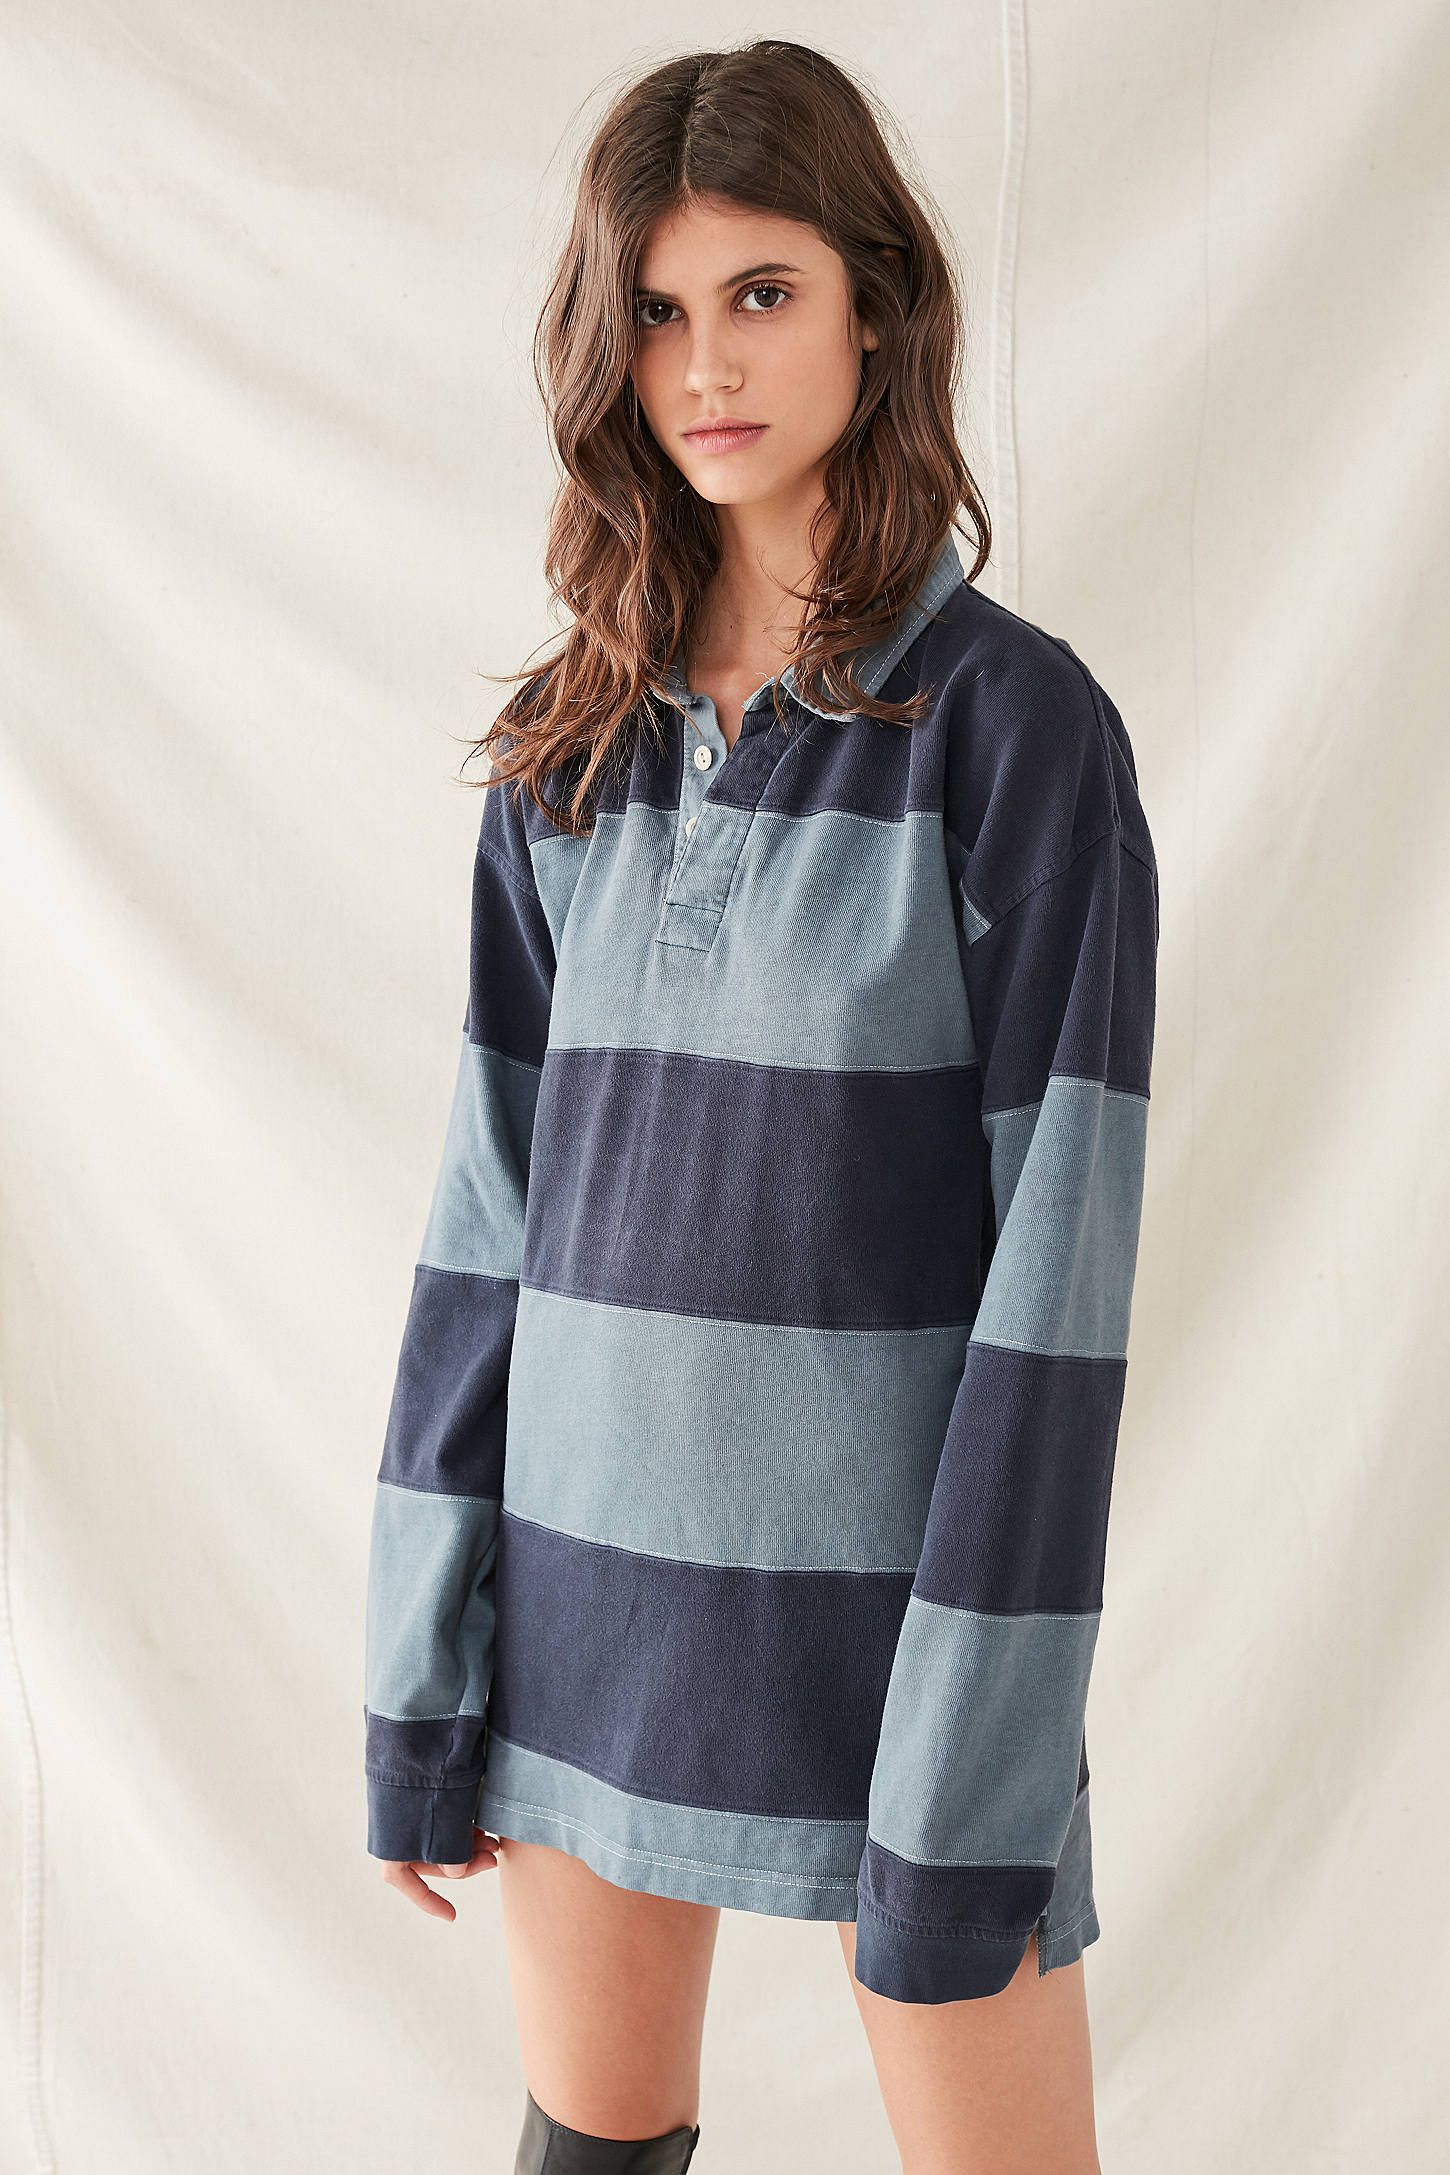 Urban Renewal Remade Overdyed Rugby Shirt Dress My Style Shirt